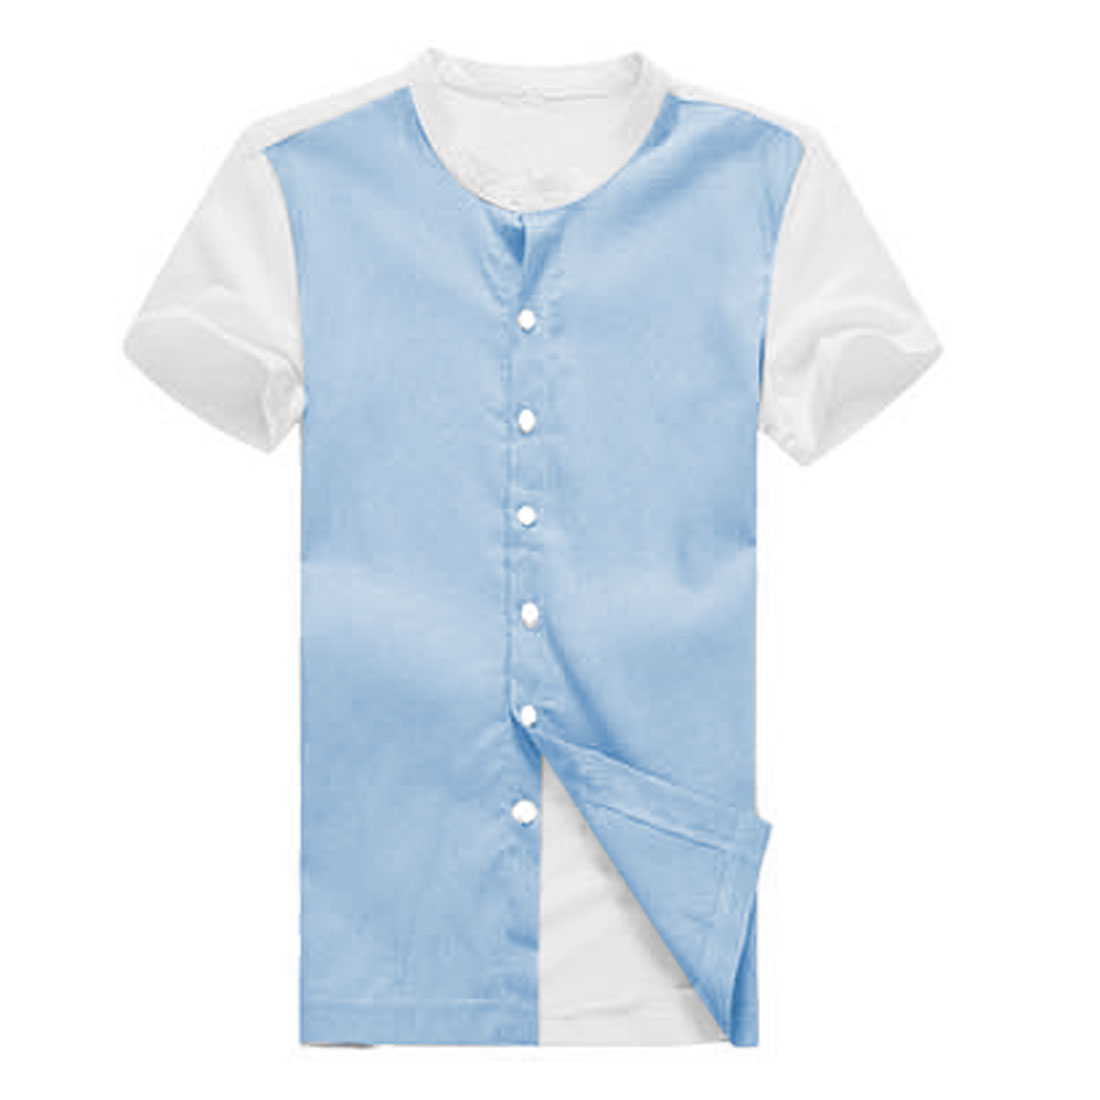 Men Chic Crew Neckline Short Sleeve Contrast Color Light Blue White Shirt S